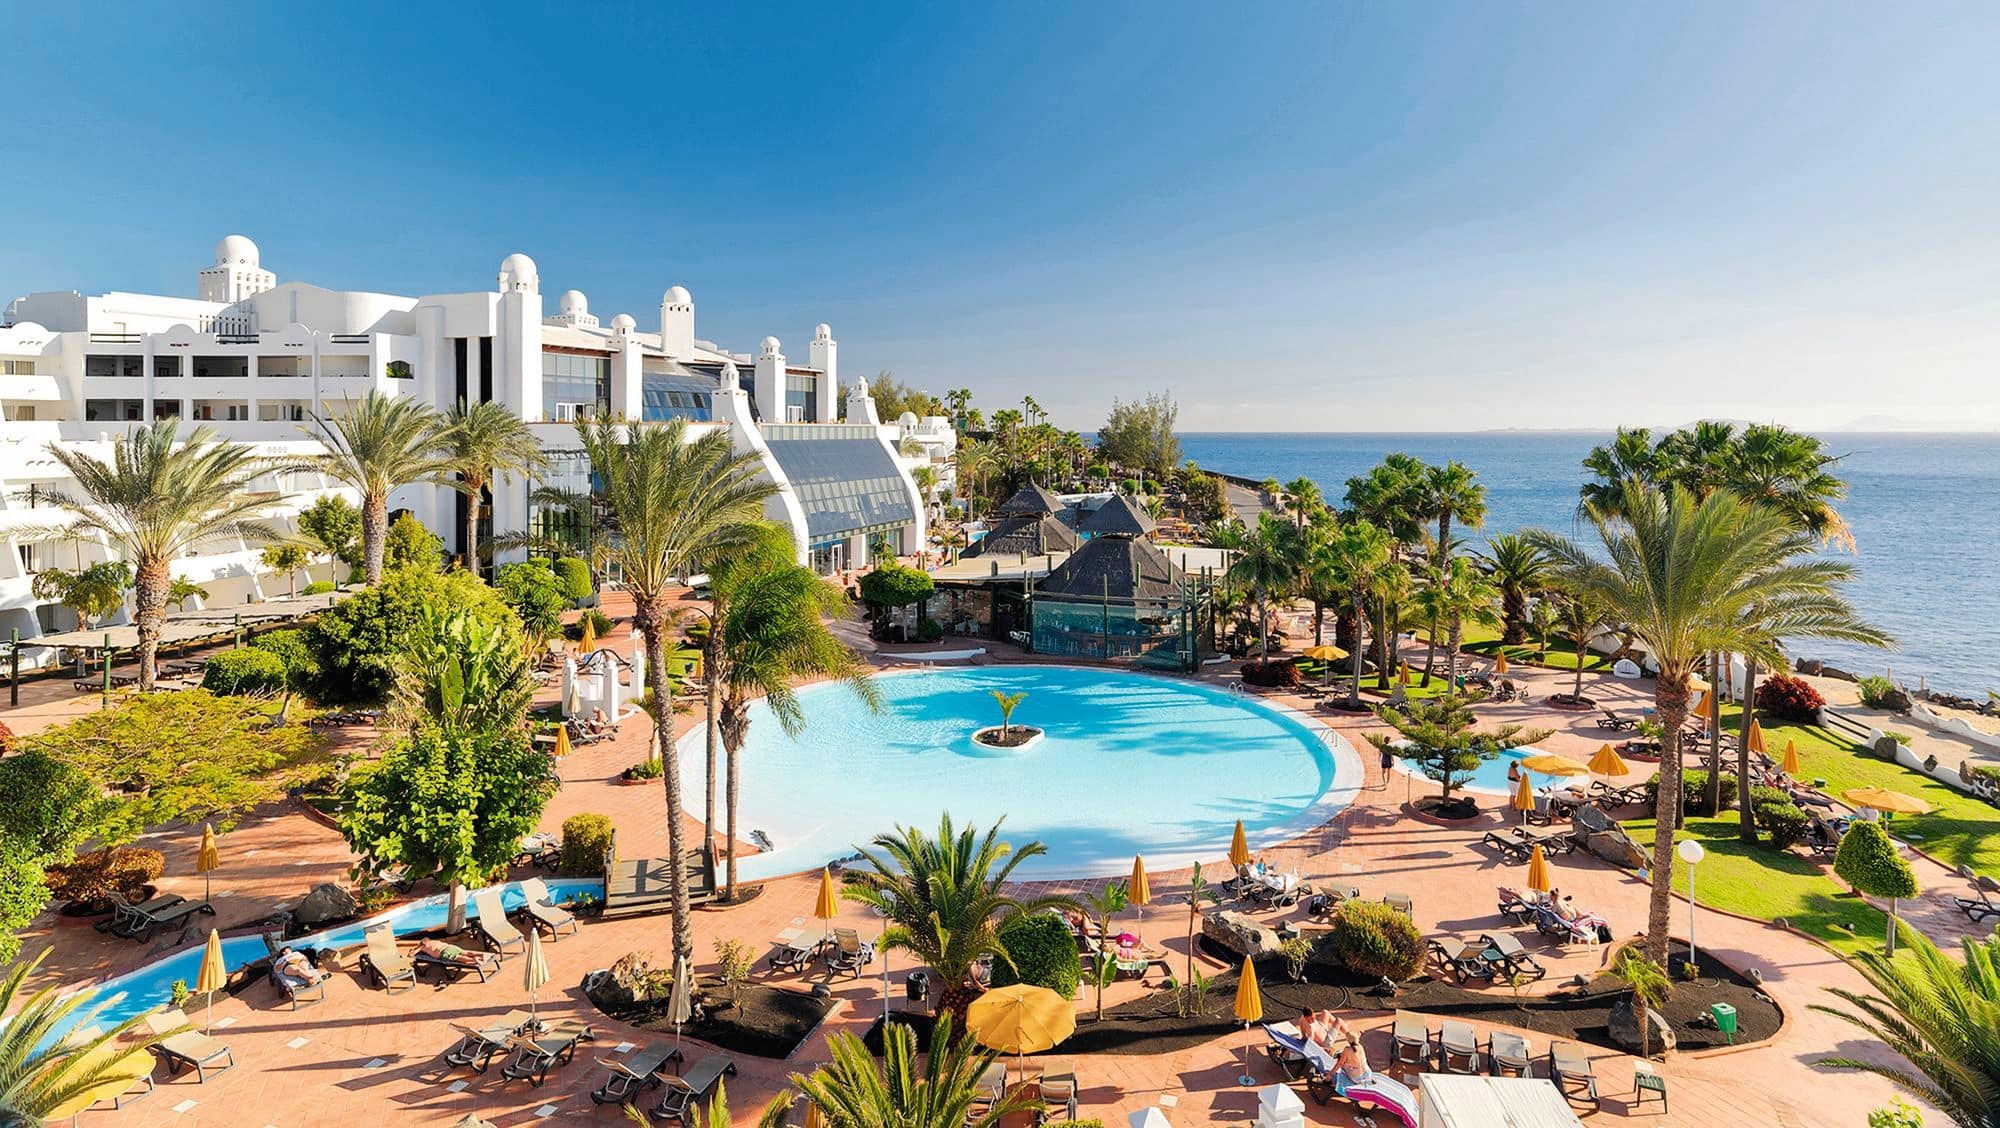 H10 timanfaya palace hotel cheap holidays to h10 for Design hotel lanzarote